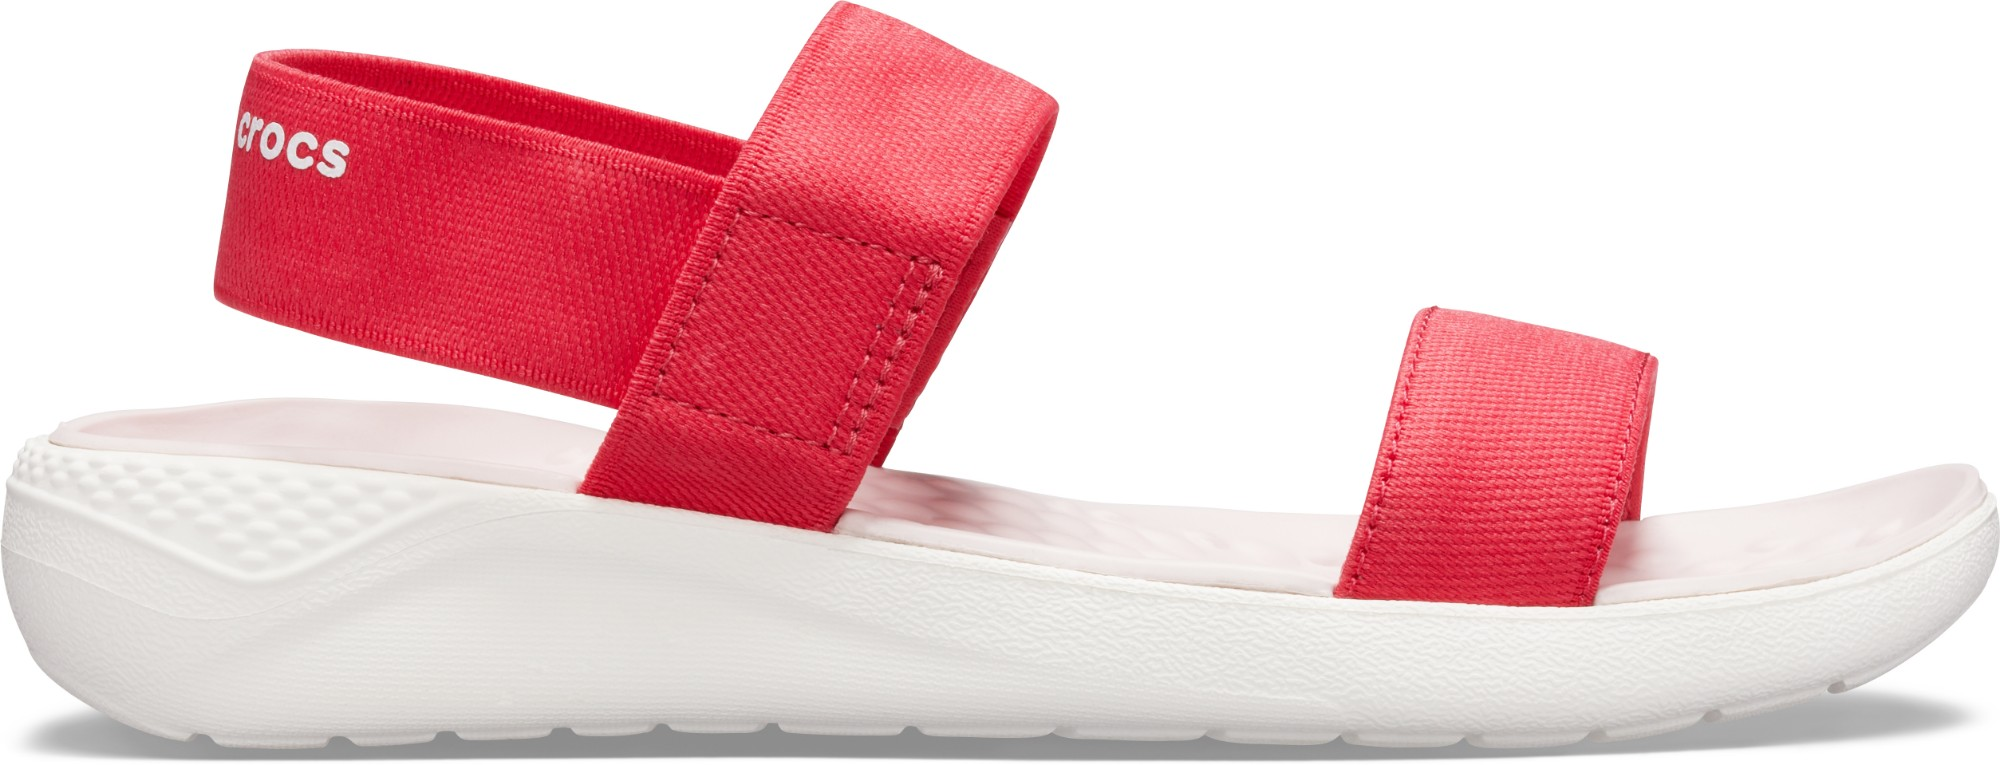 Crocs™ Women's LiteRide Sandal Poppy/White 38,5